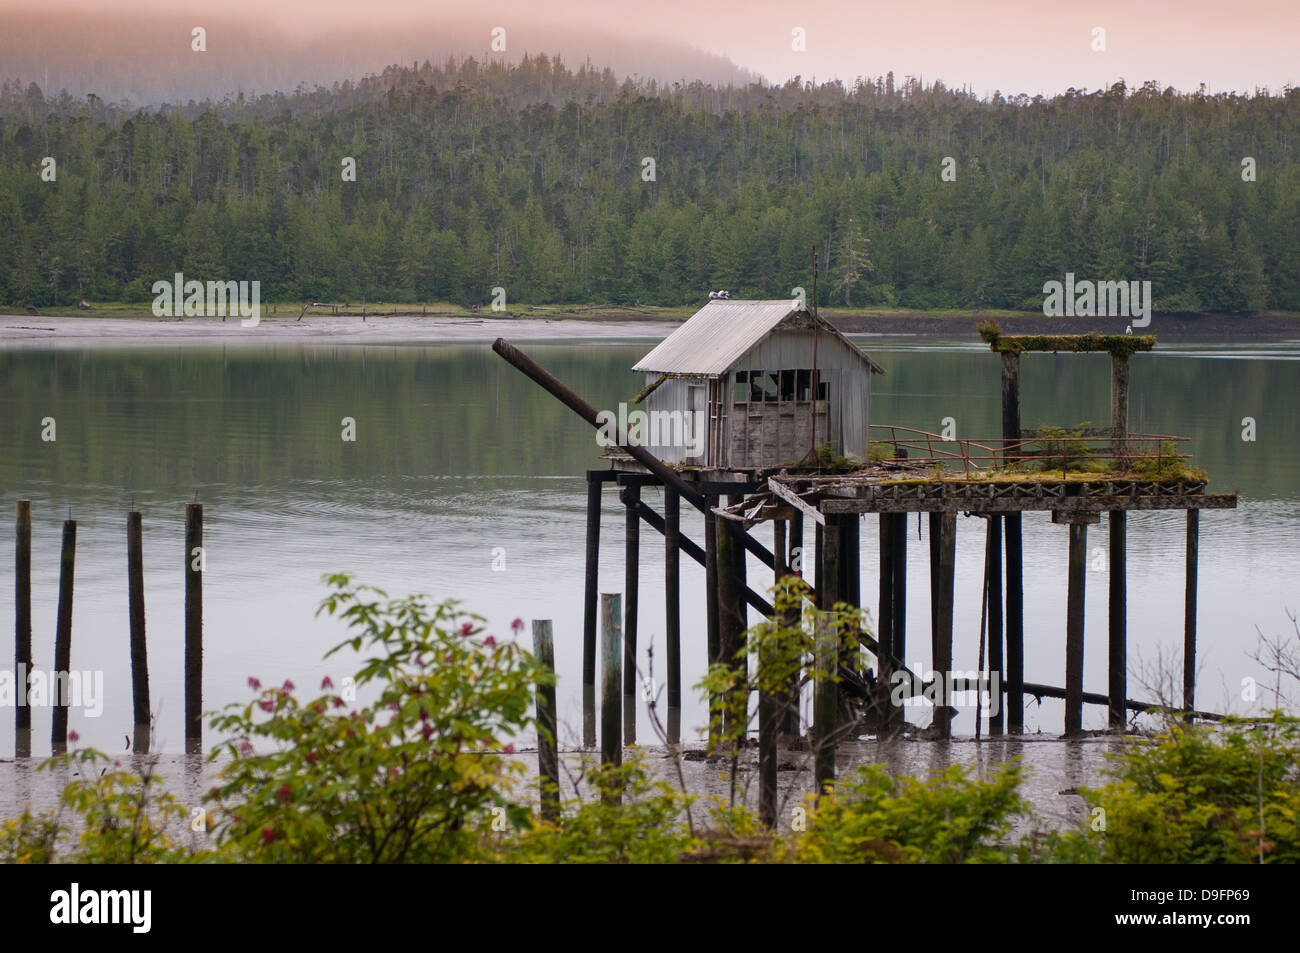 North Pacific Cannery National Historic Site Museum, Prince Rupert, British Columbia, Canada - Stock Image